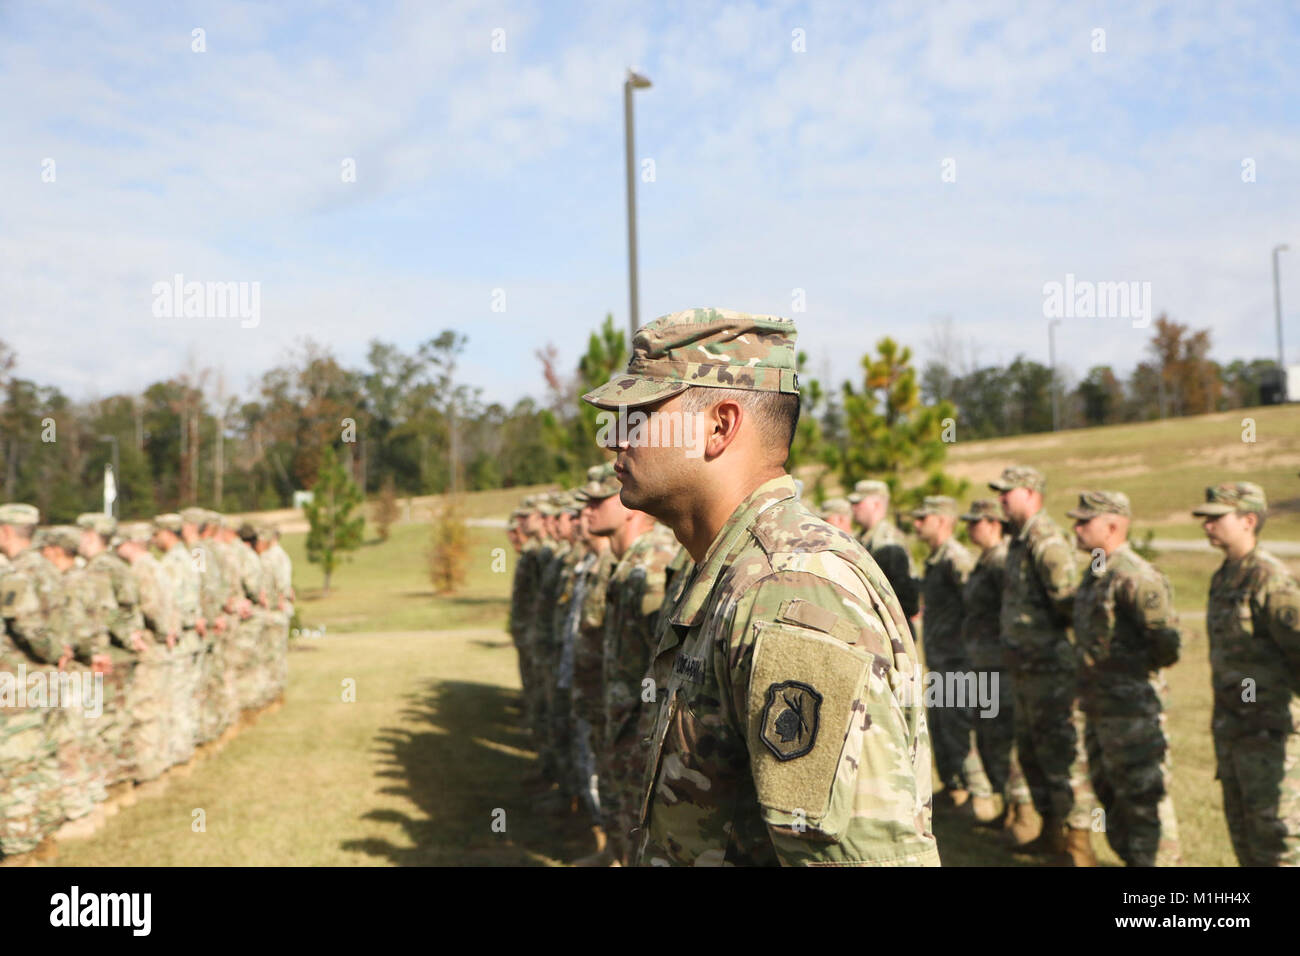 He 98th Training Division IET And The 1 46th Infantry Regiment Battalion Hosted